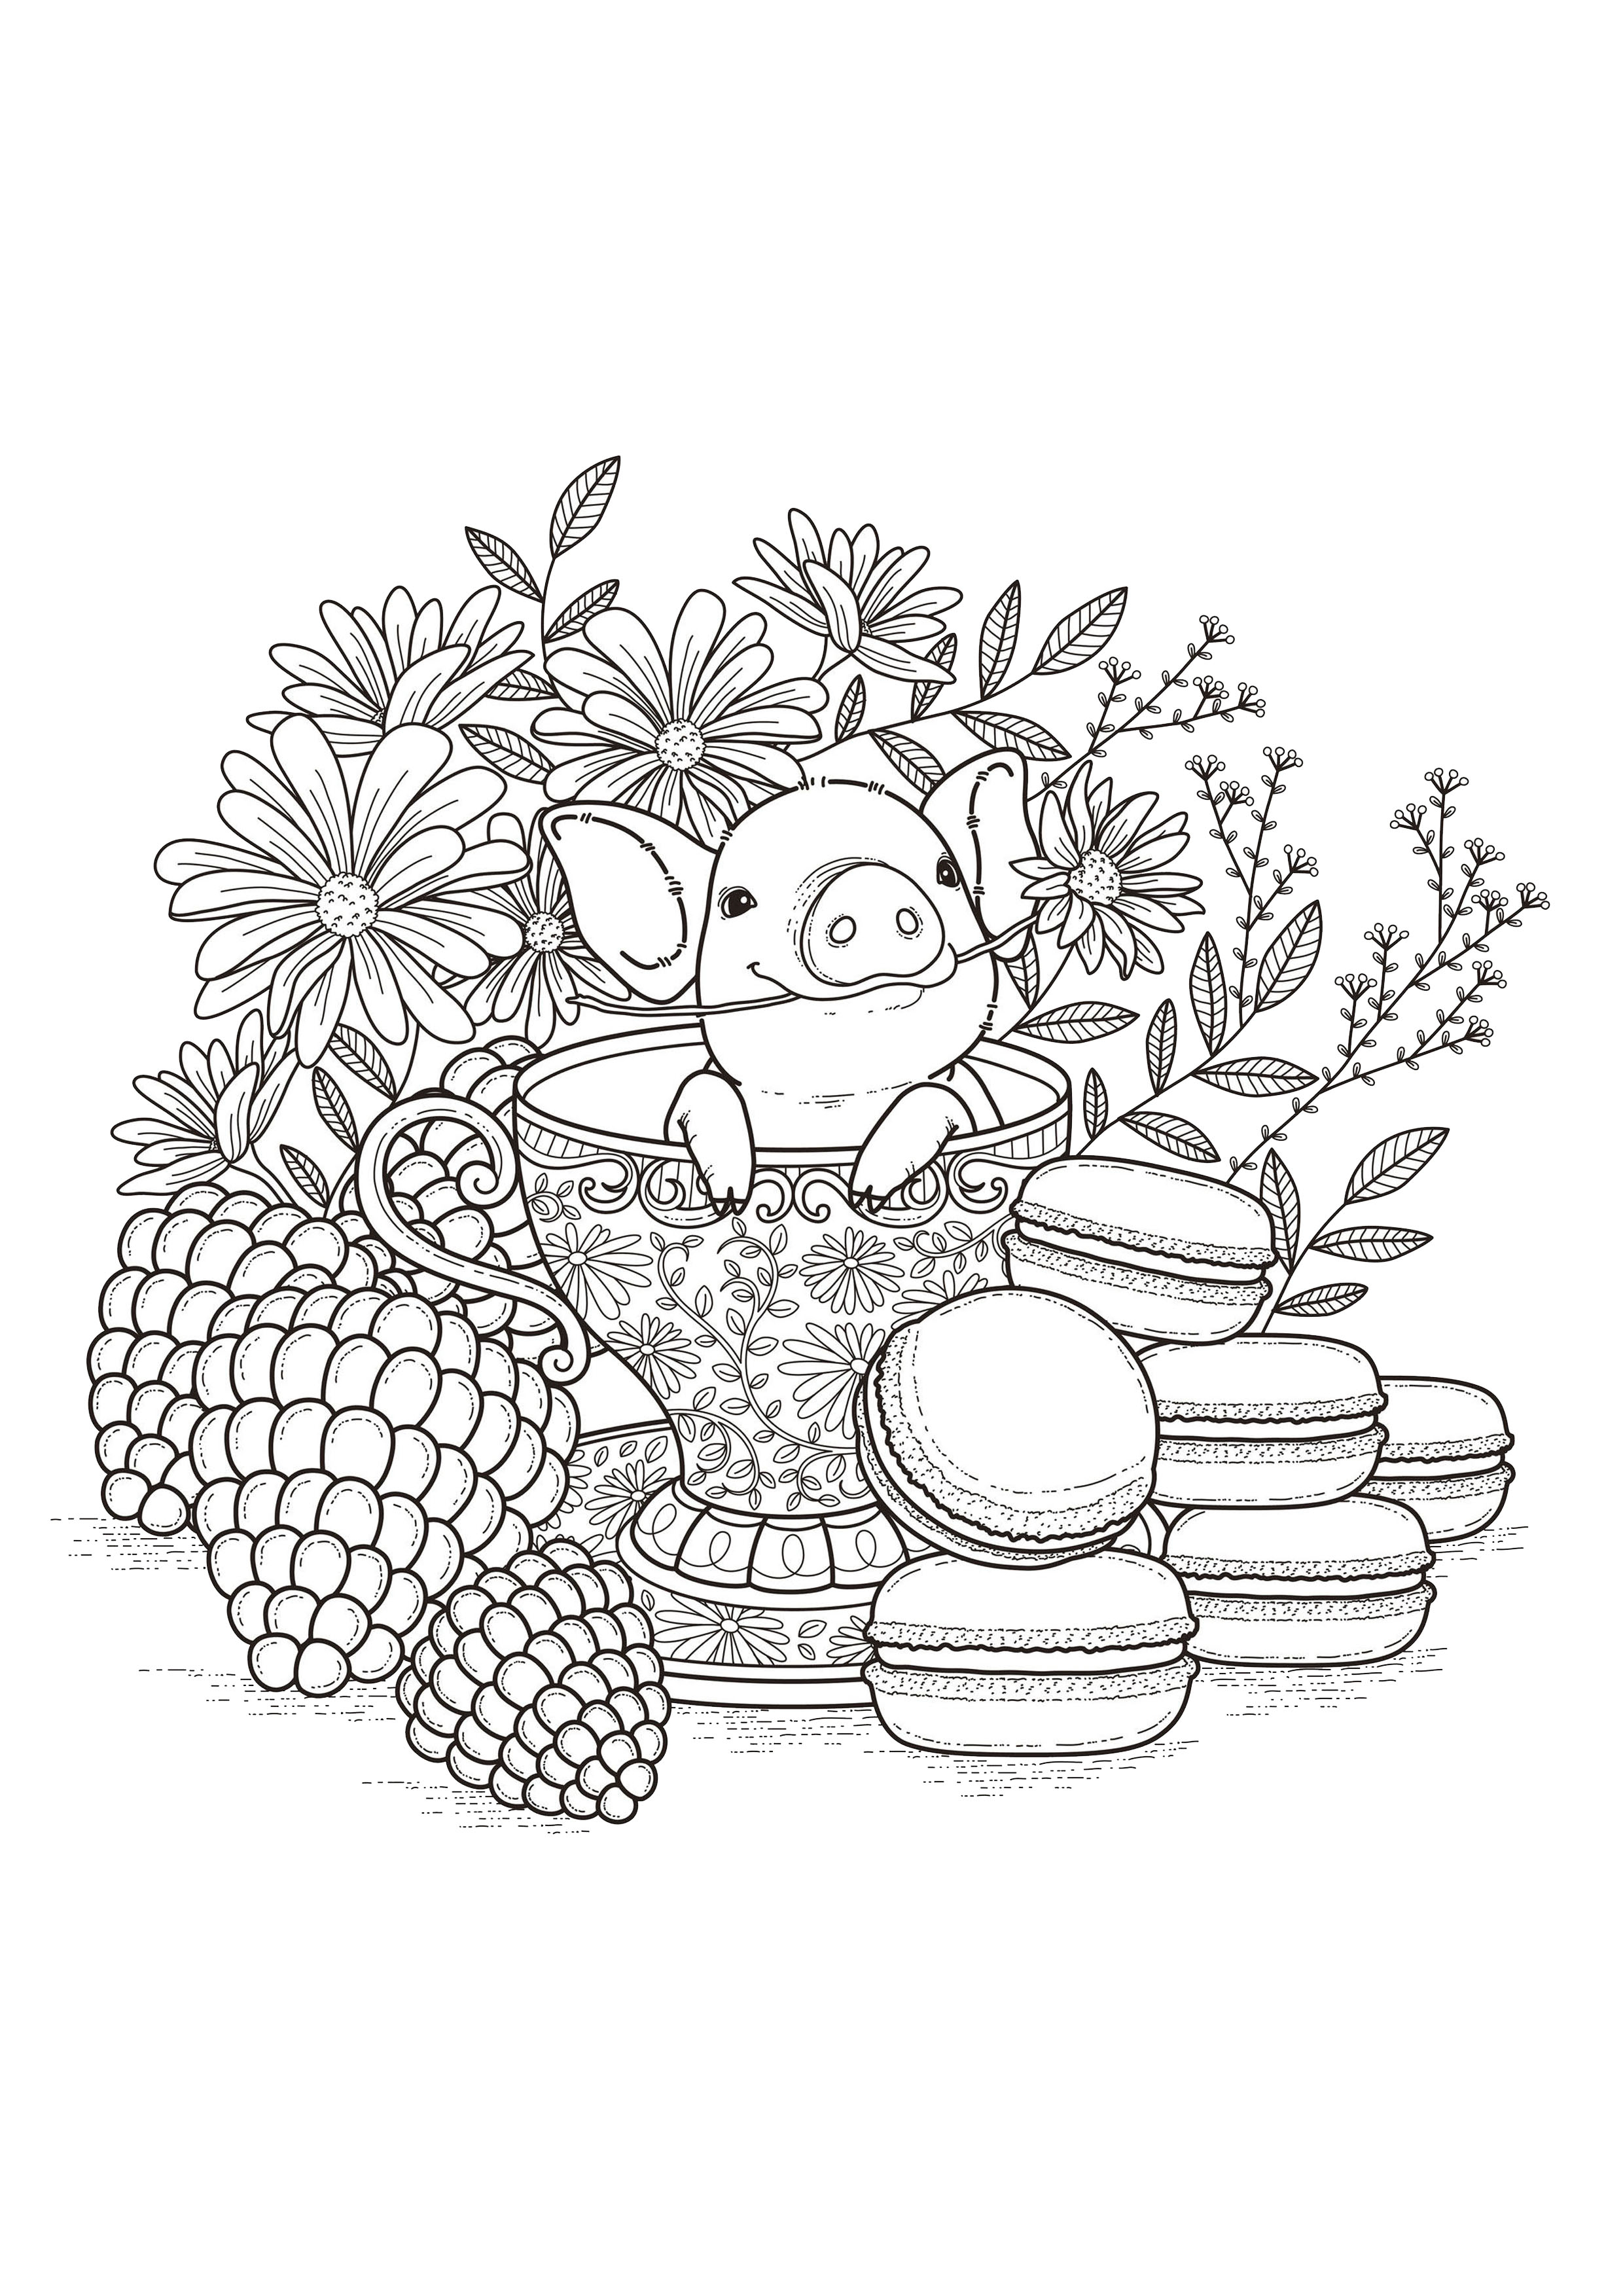 Adult Coloring Pages Ba Pork Pigs Adult Coloring Pages